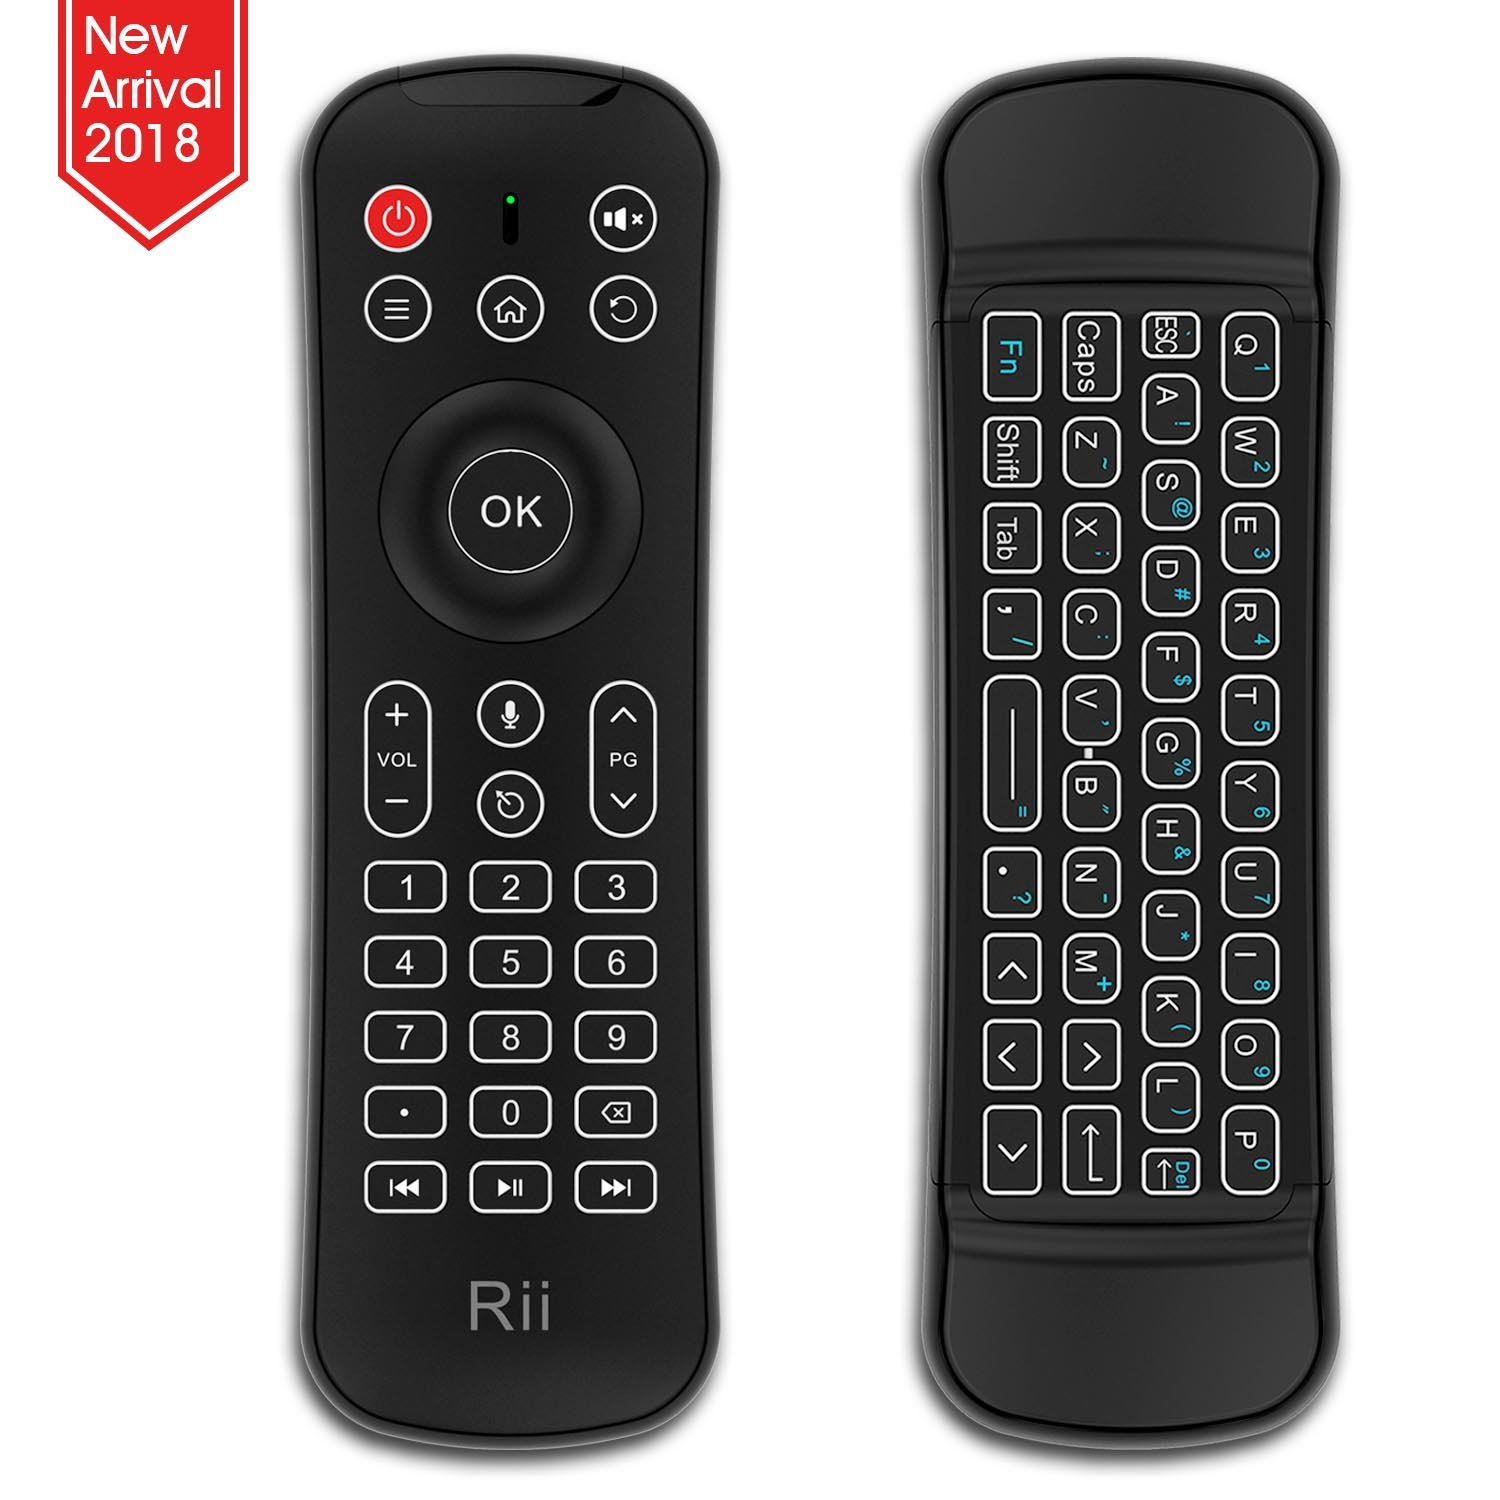 Rii Backlit Fly Mouse 2.4G MX6 Multifunctional Wireless Mini Keyboard and Remote Control With Microphone For KODI,Raspberry Pi 2,3, Android TV/Box/Mini PC,IPTV,HTPC,Android,Windows,MAC by Rii (Image #1)